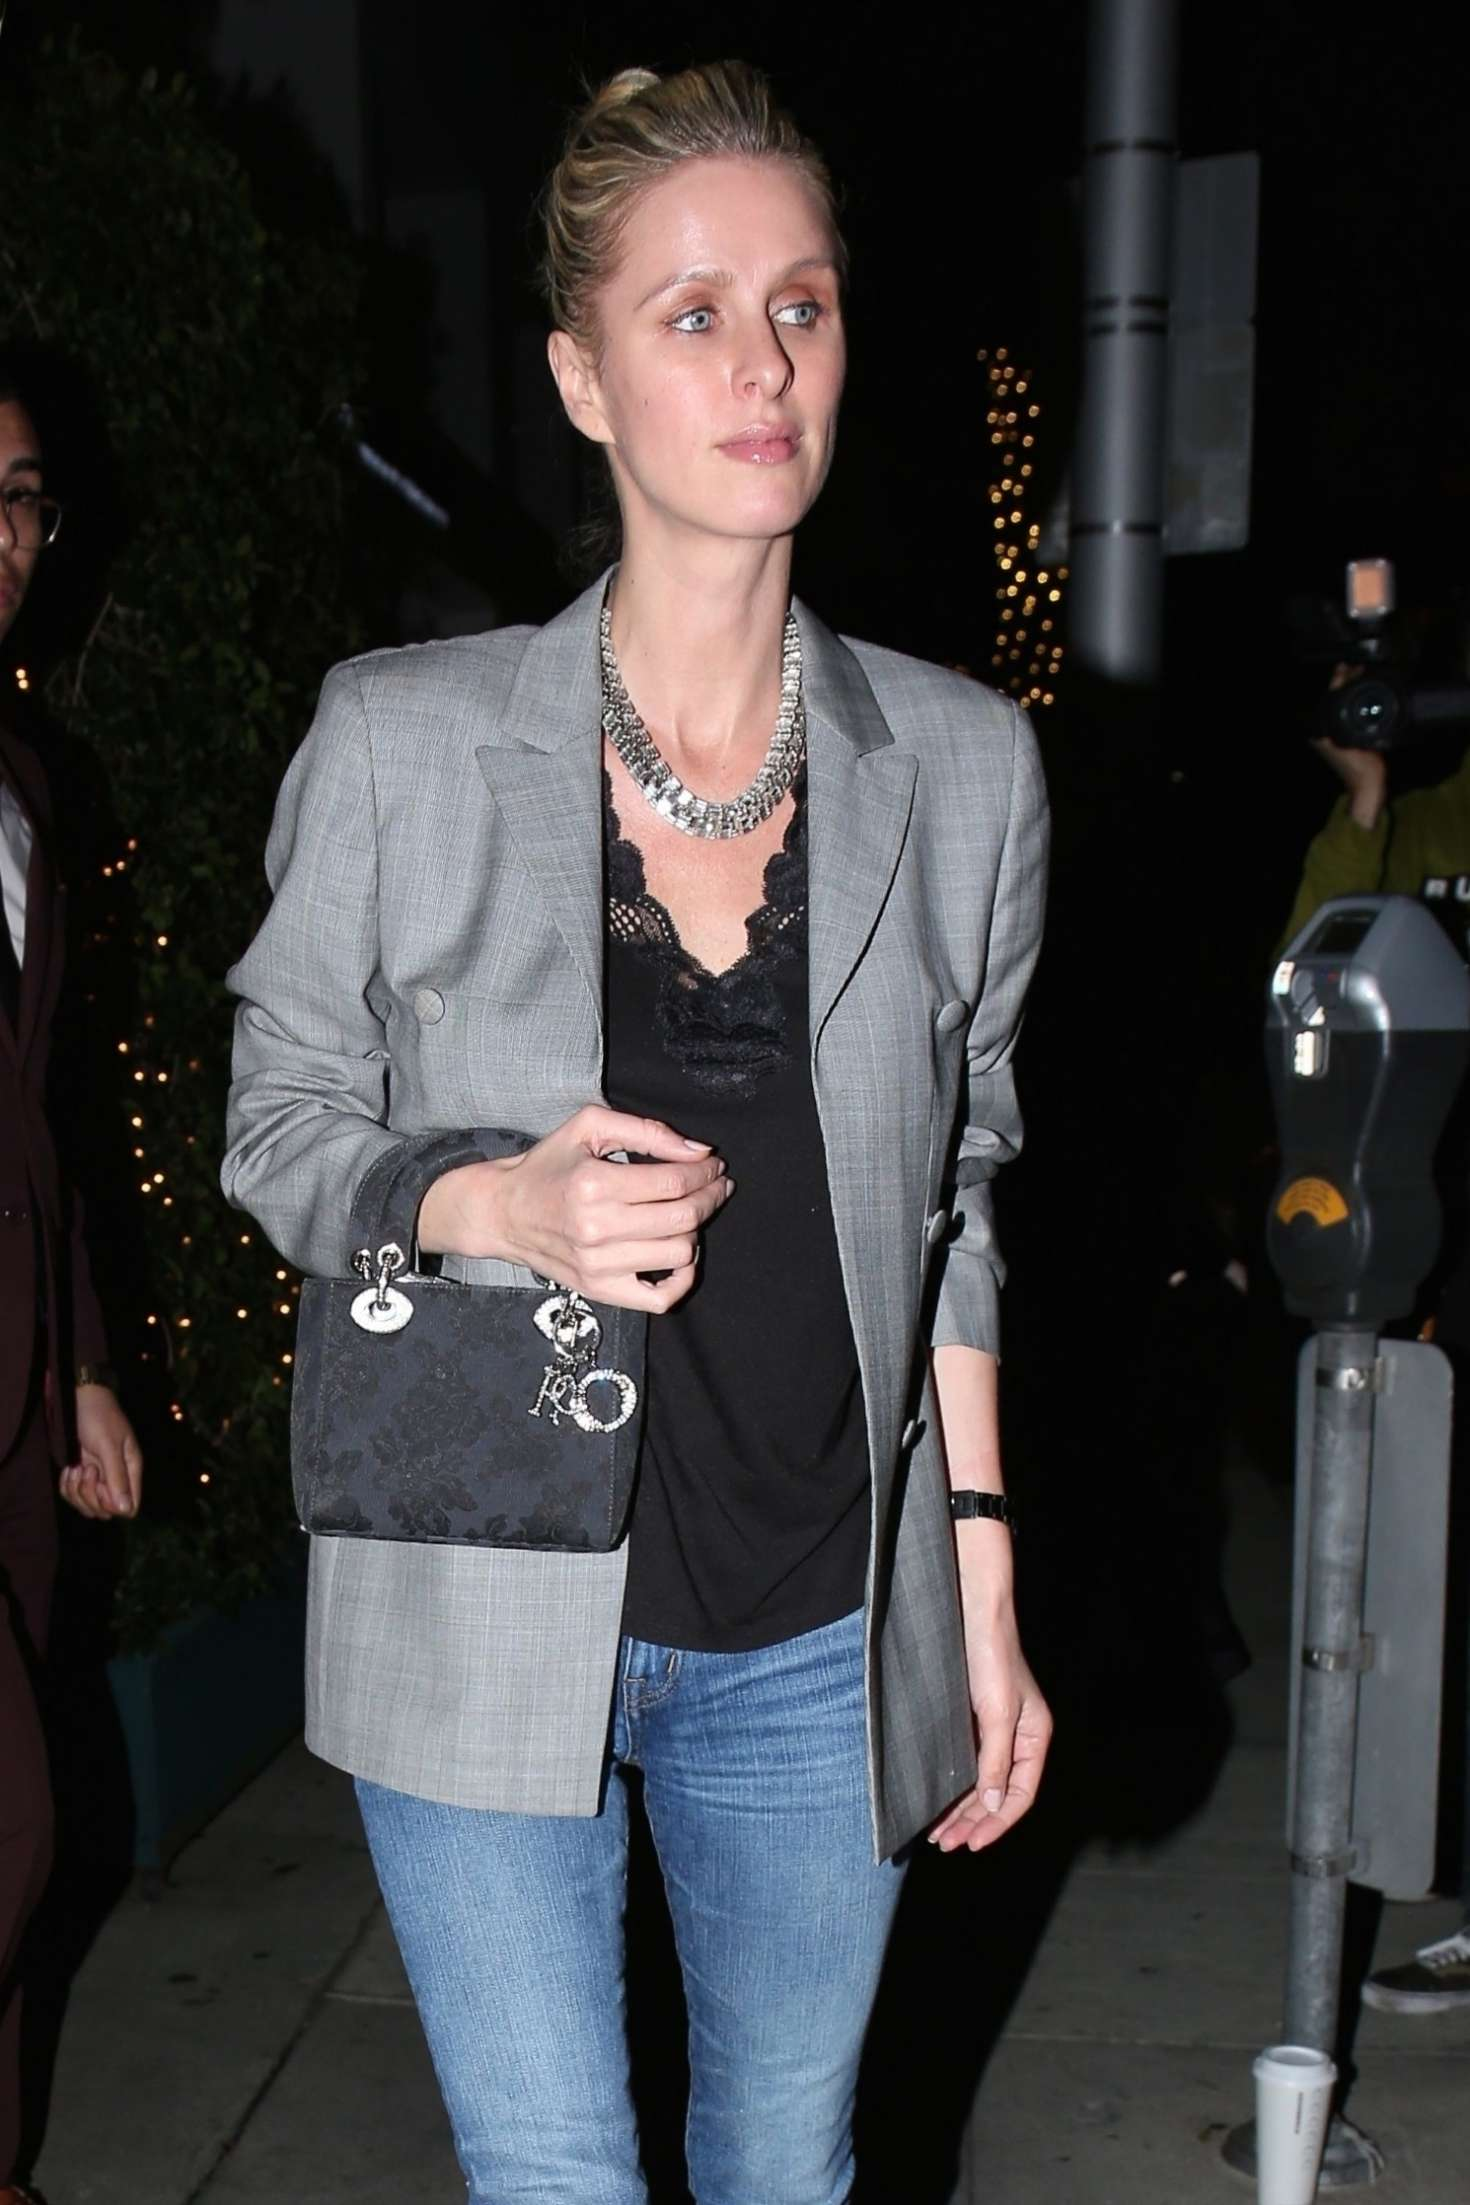 Nicky Hilton in Jeans at Mr Chow in Beverly Hills